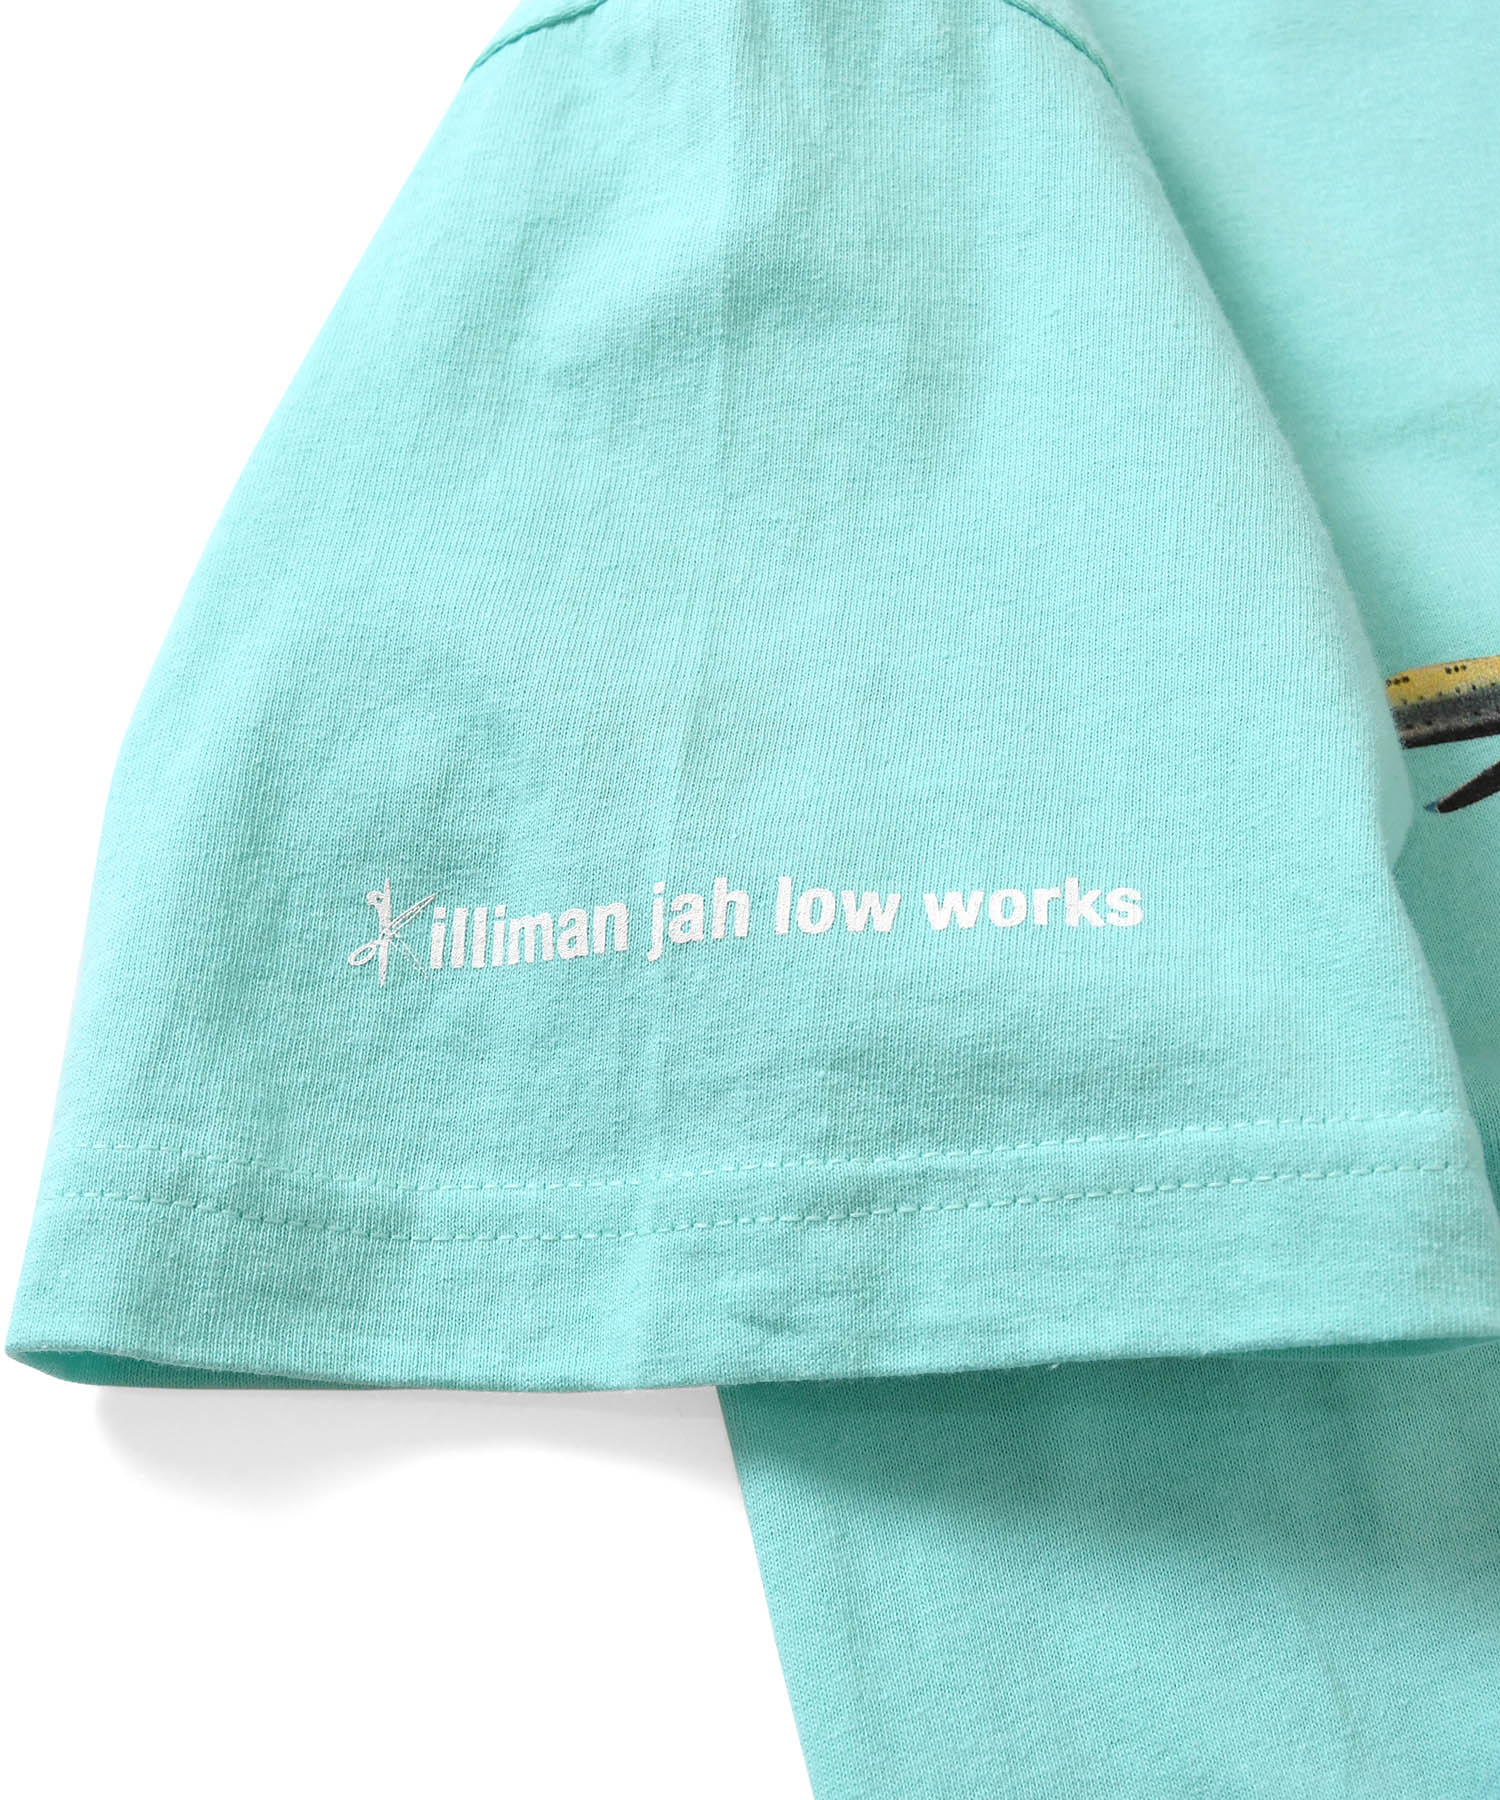 Lafayette × KILLIMAN JAH LOW WORKS KEEPING IT MOVING TEE LS200116 MINT